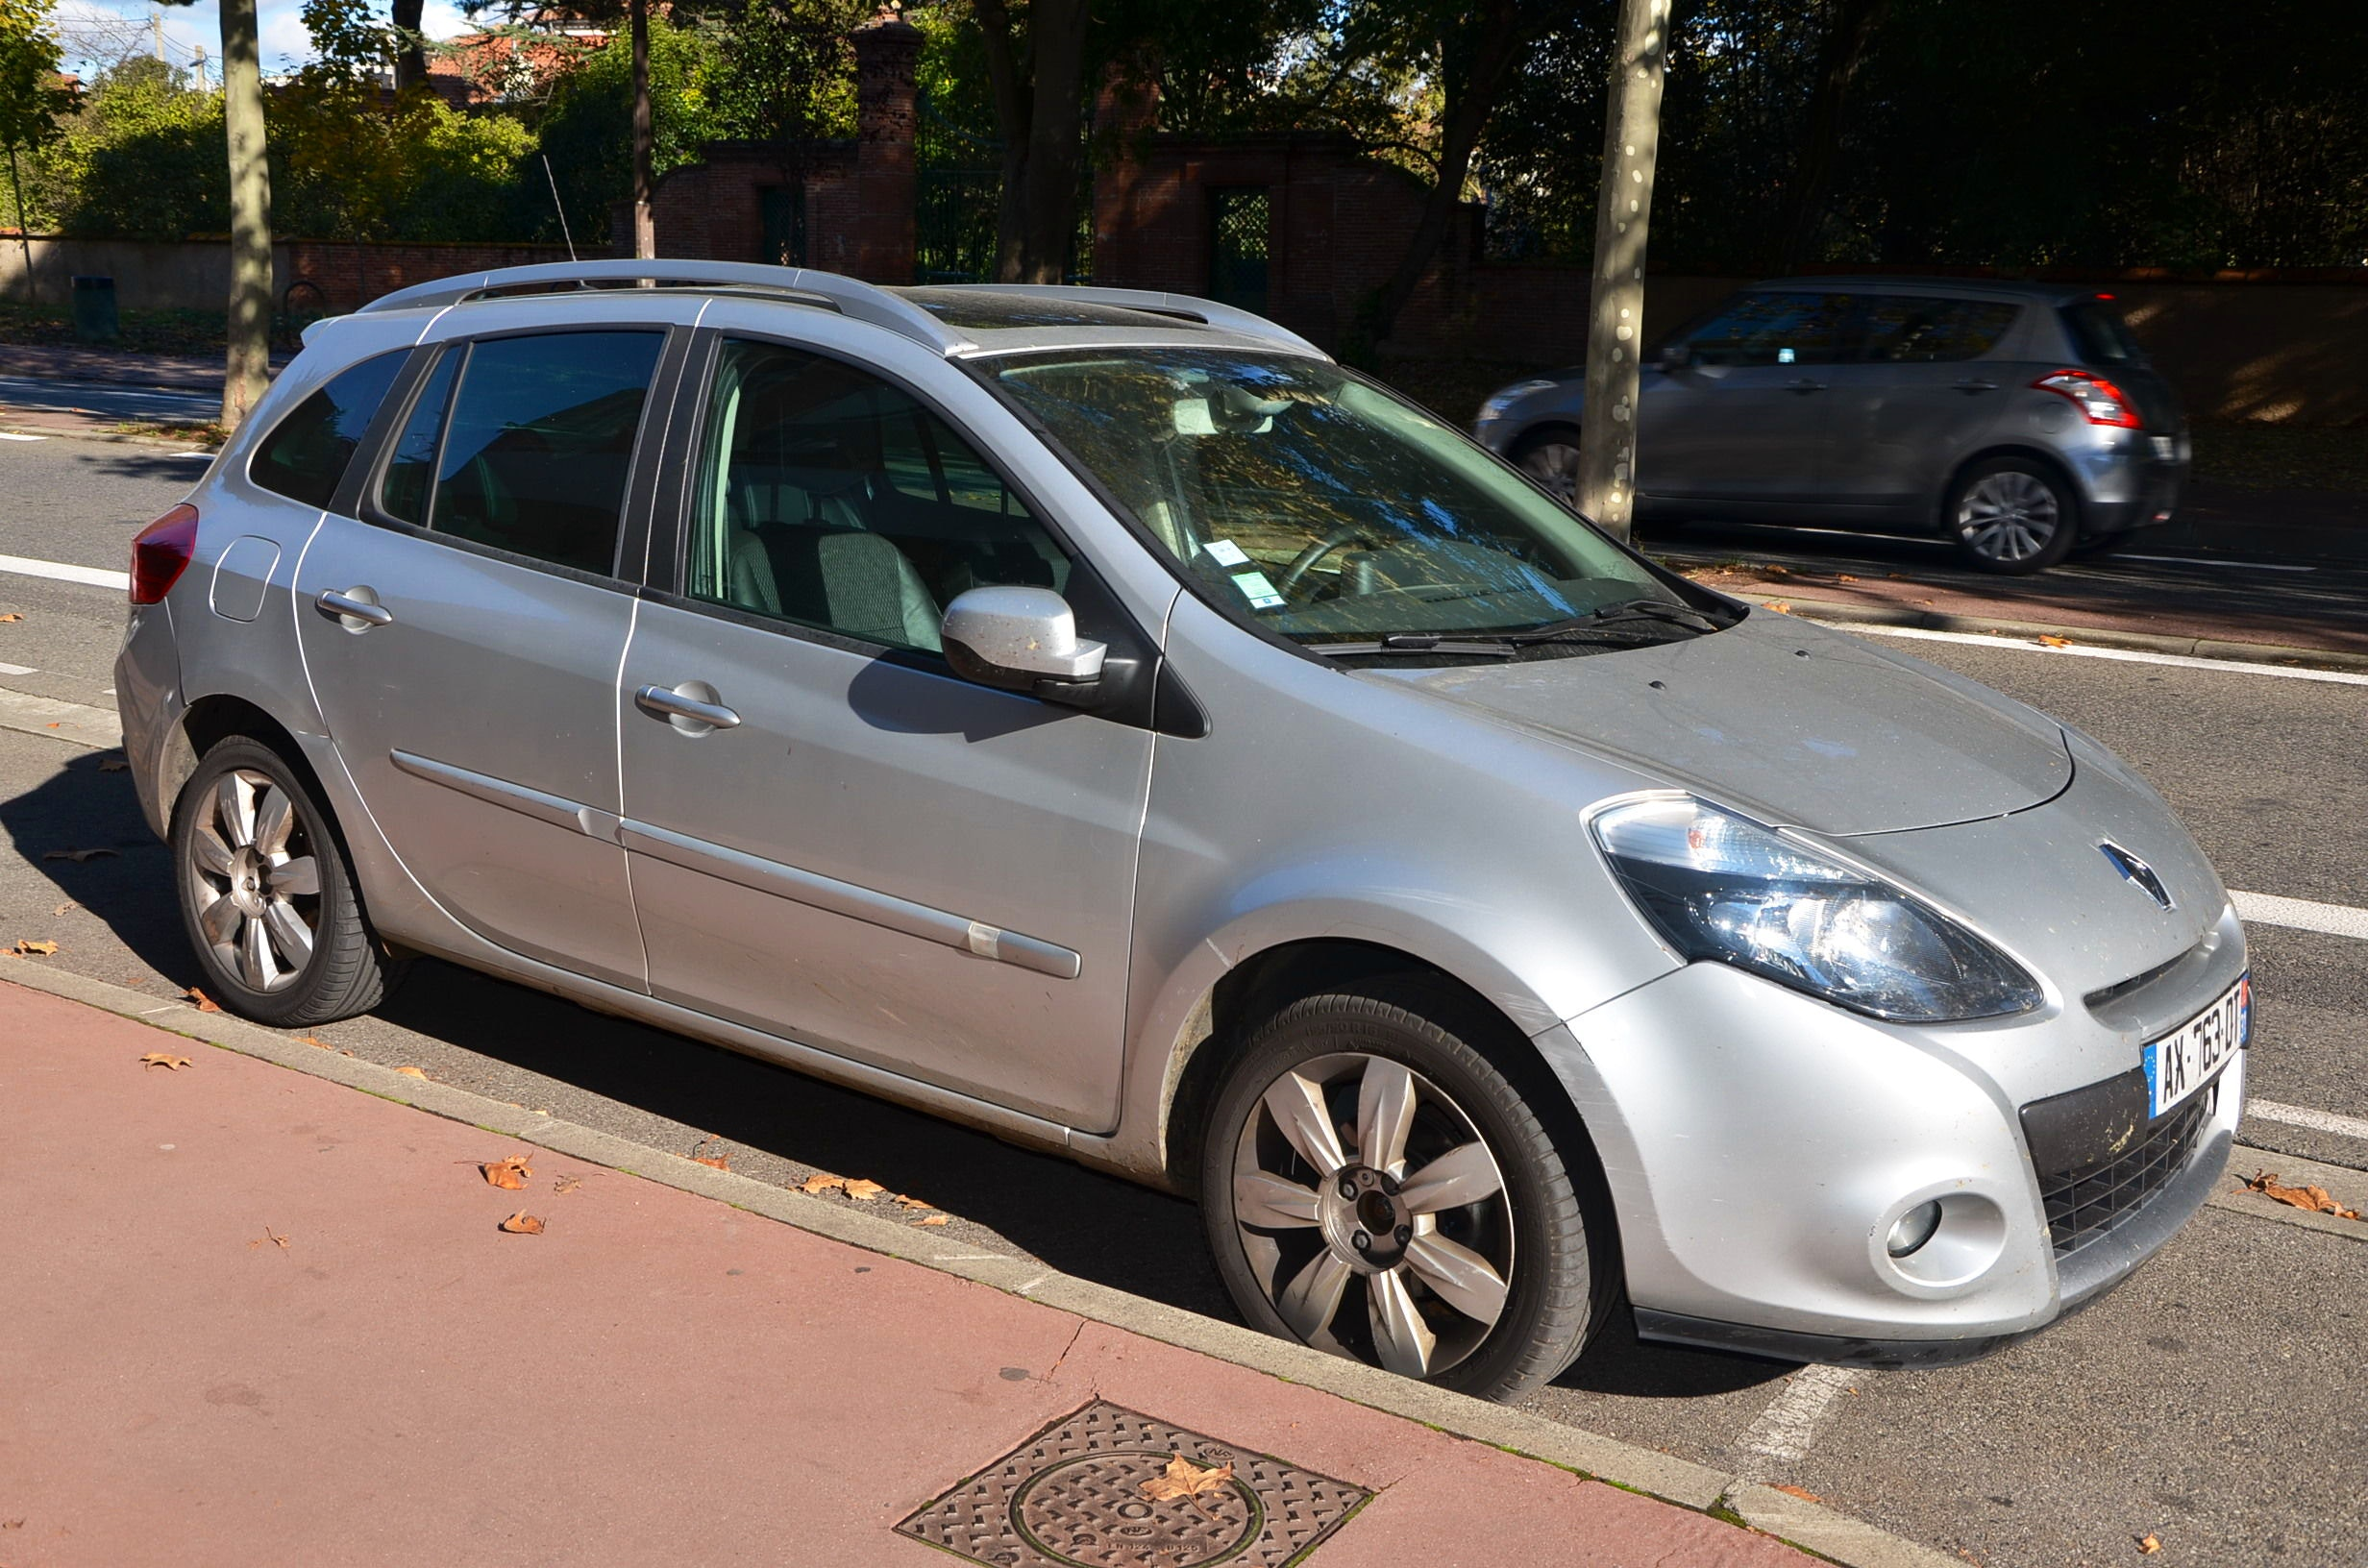 Renault Clio 3 Estate Exception Tom Tom DCI 105, 2010, Diesel - Berline Toulouse (31)